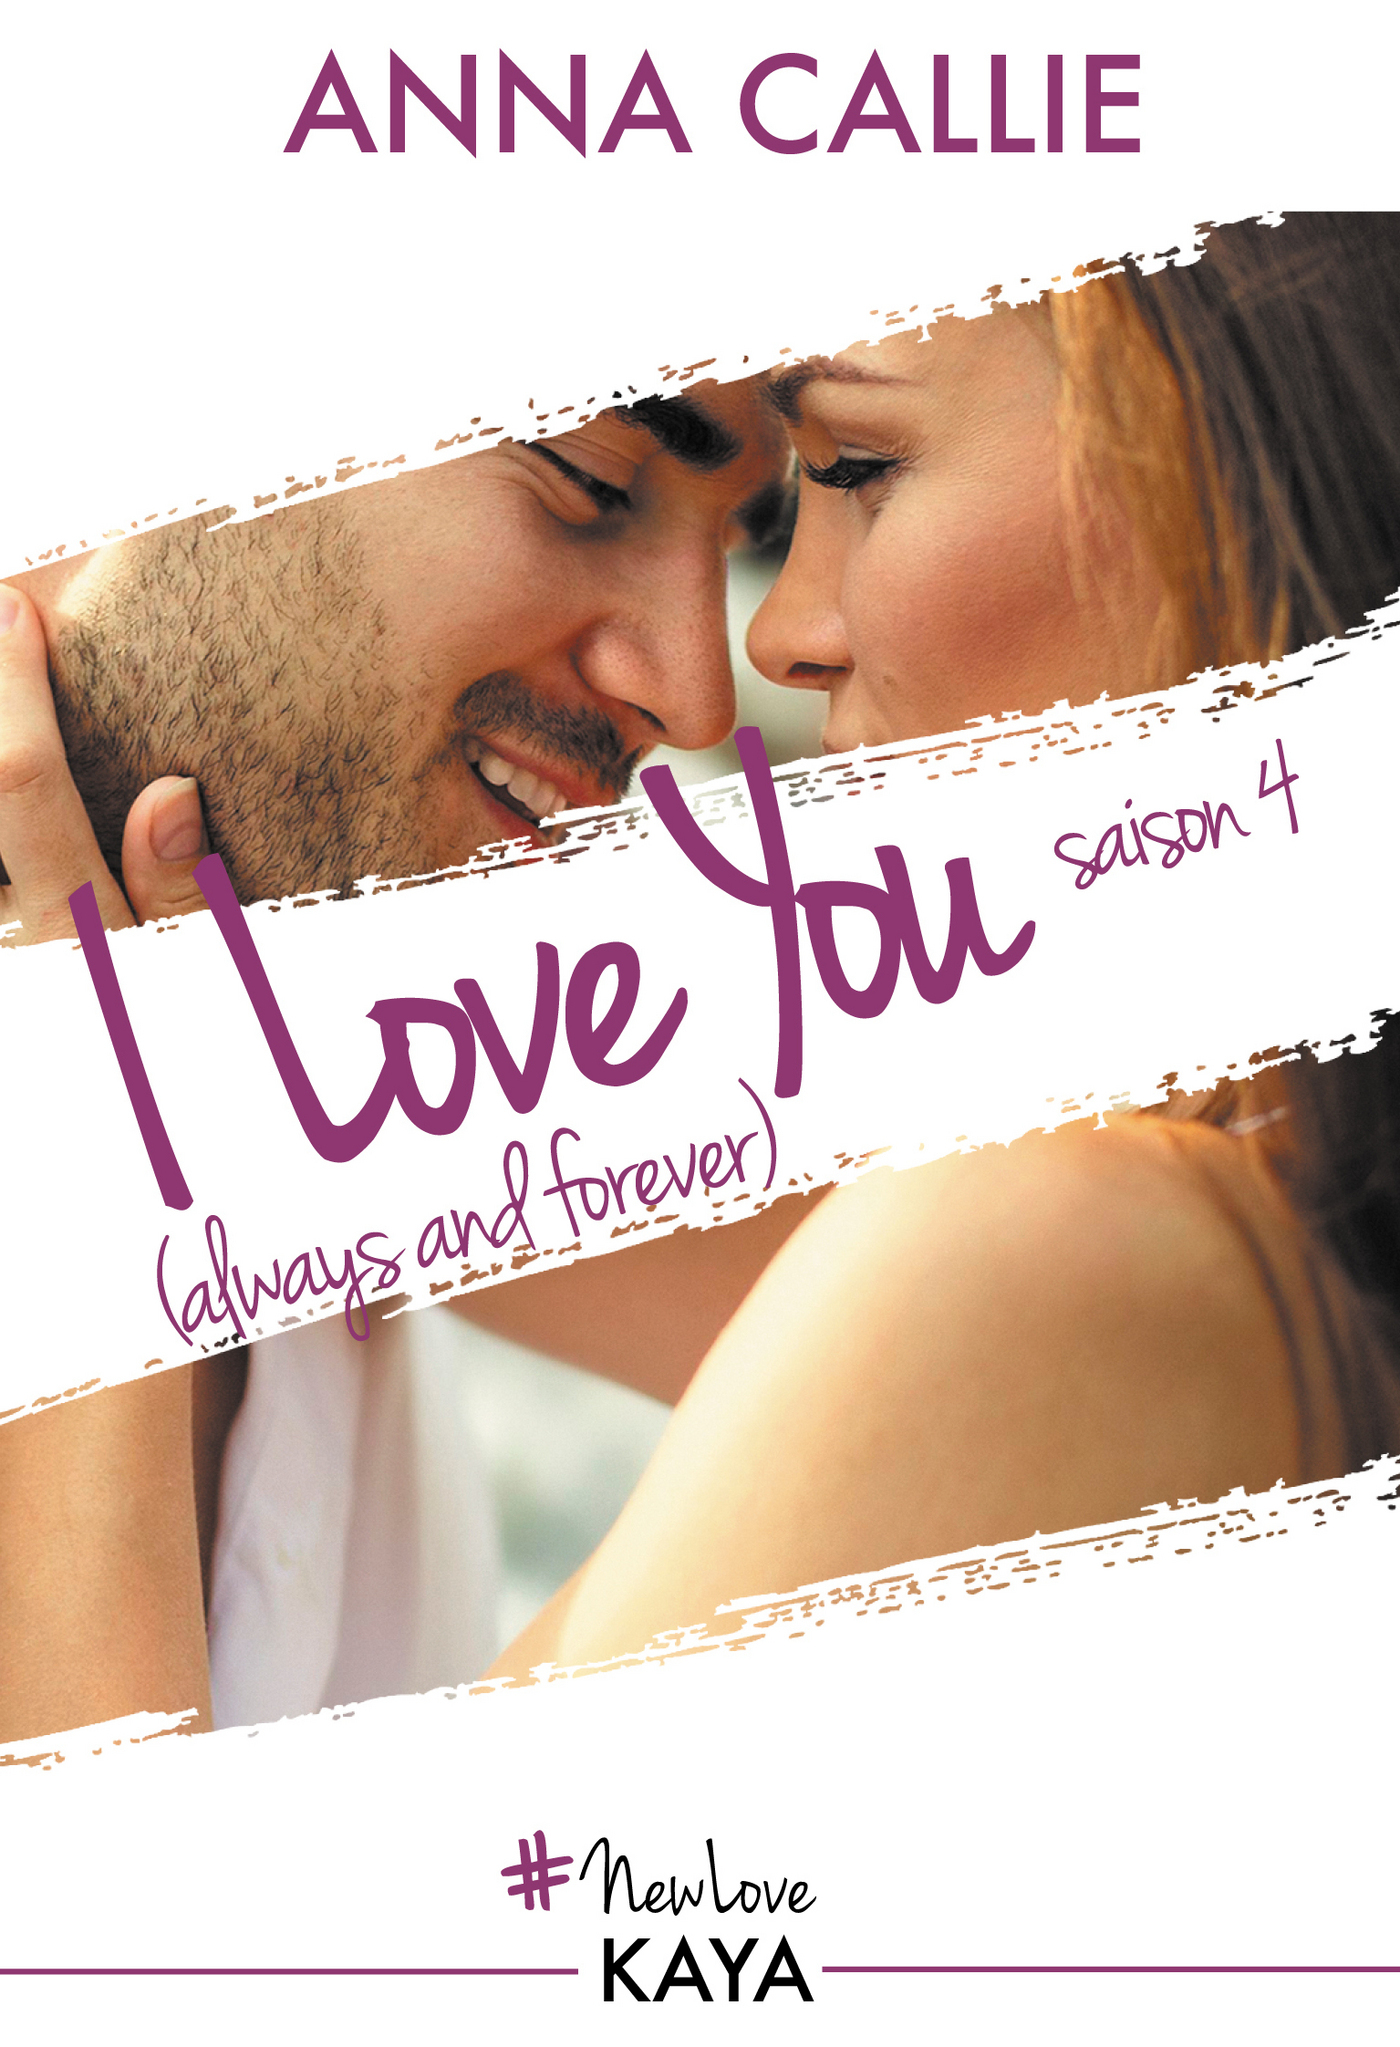 I Love You (always and forever) - Saison 4